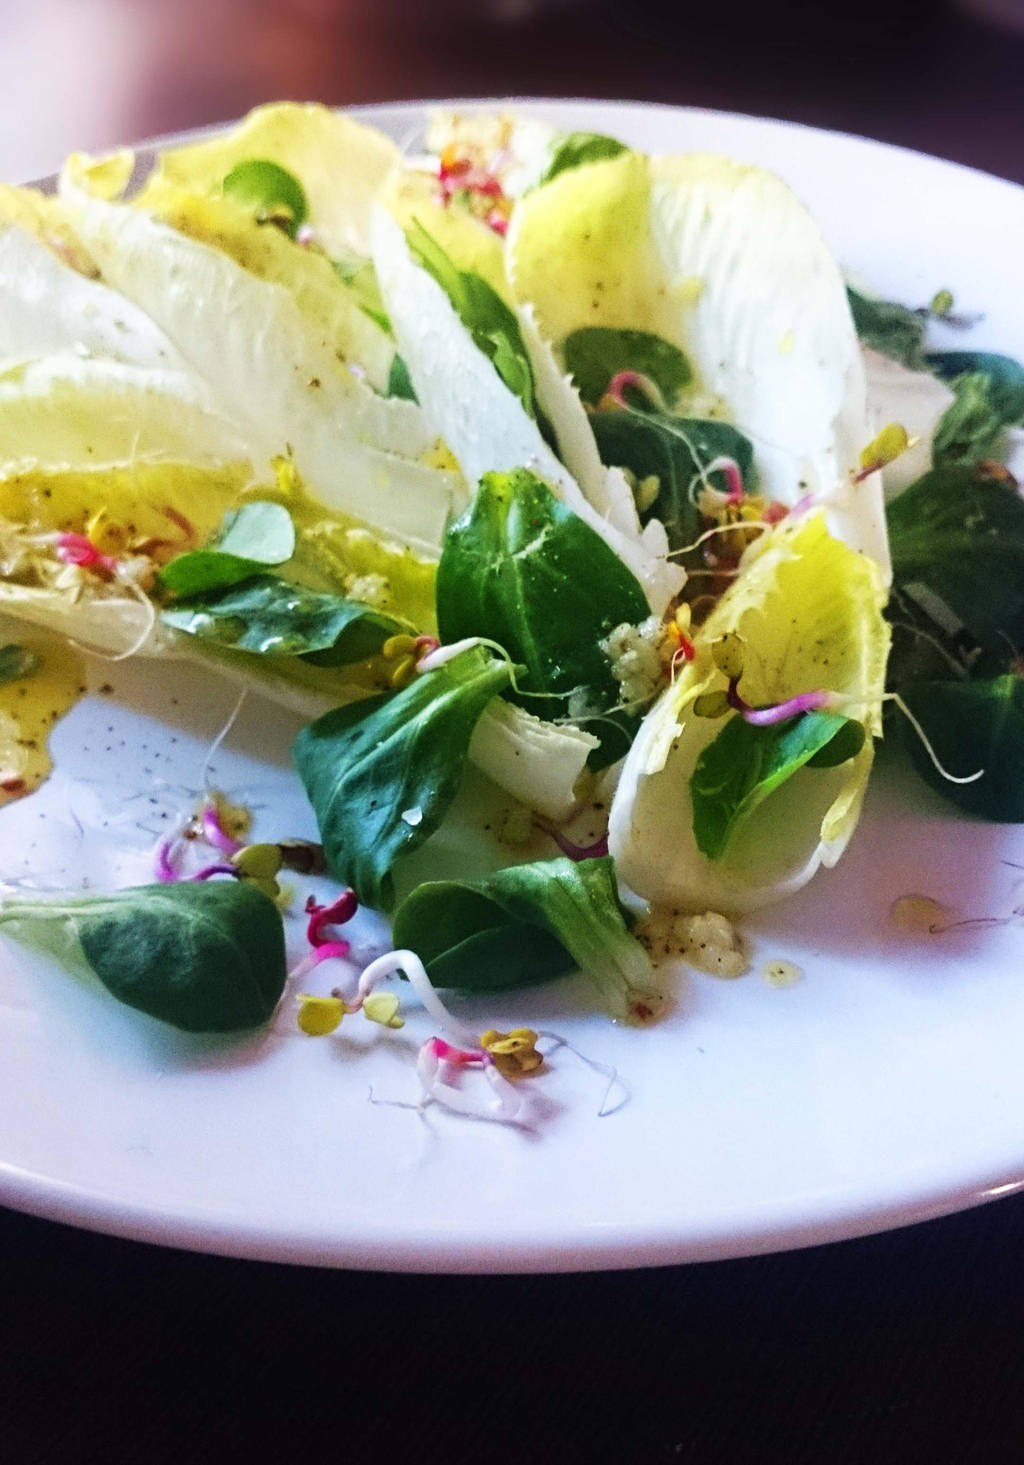 Chicory and lamb's lettuce salad by CookConcept